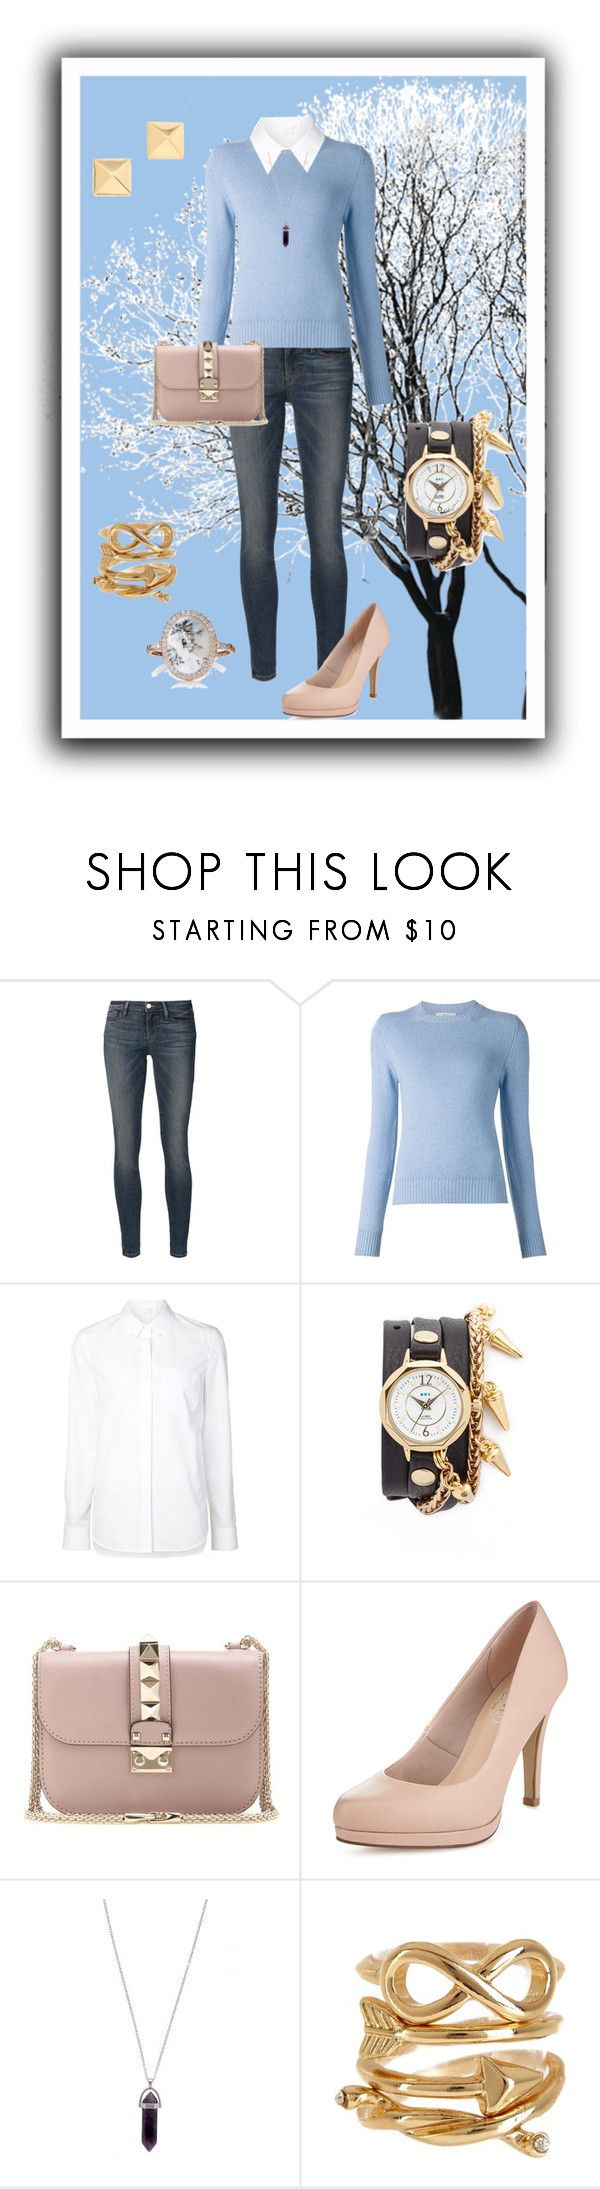 """""""Sweater & shirt"""" by bebe6121985 on Polyvore featuring moda, Frame Denim, Barrie, Alexander Wang, La Mer, Valentino, Limited Edition, Vince Camuto, Spring Street i Monique Péan"""